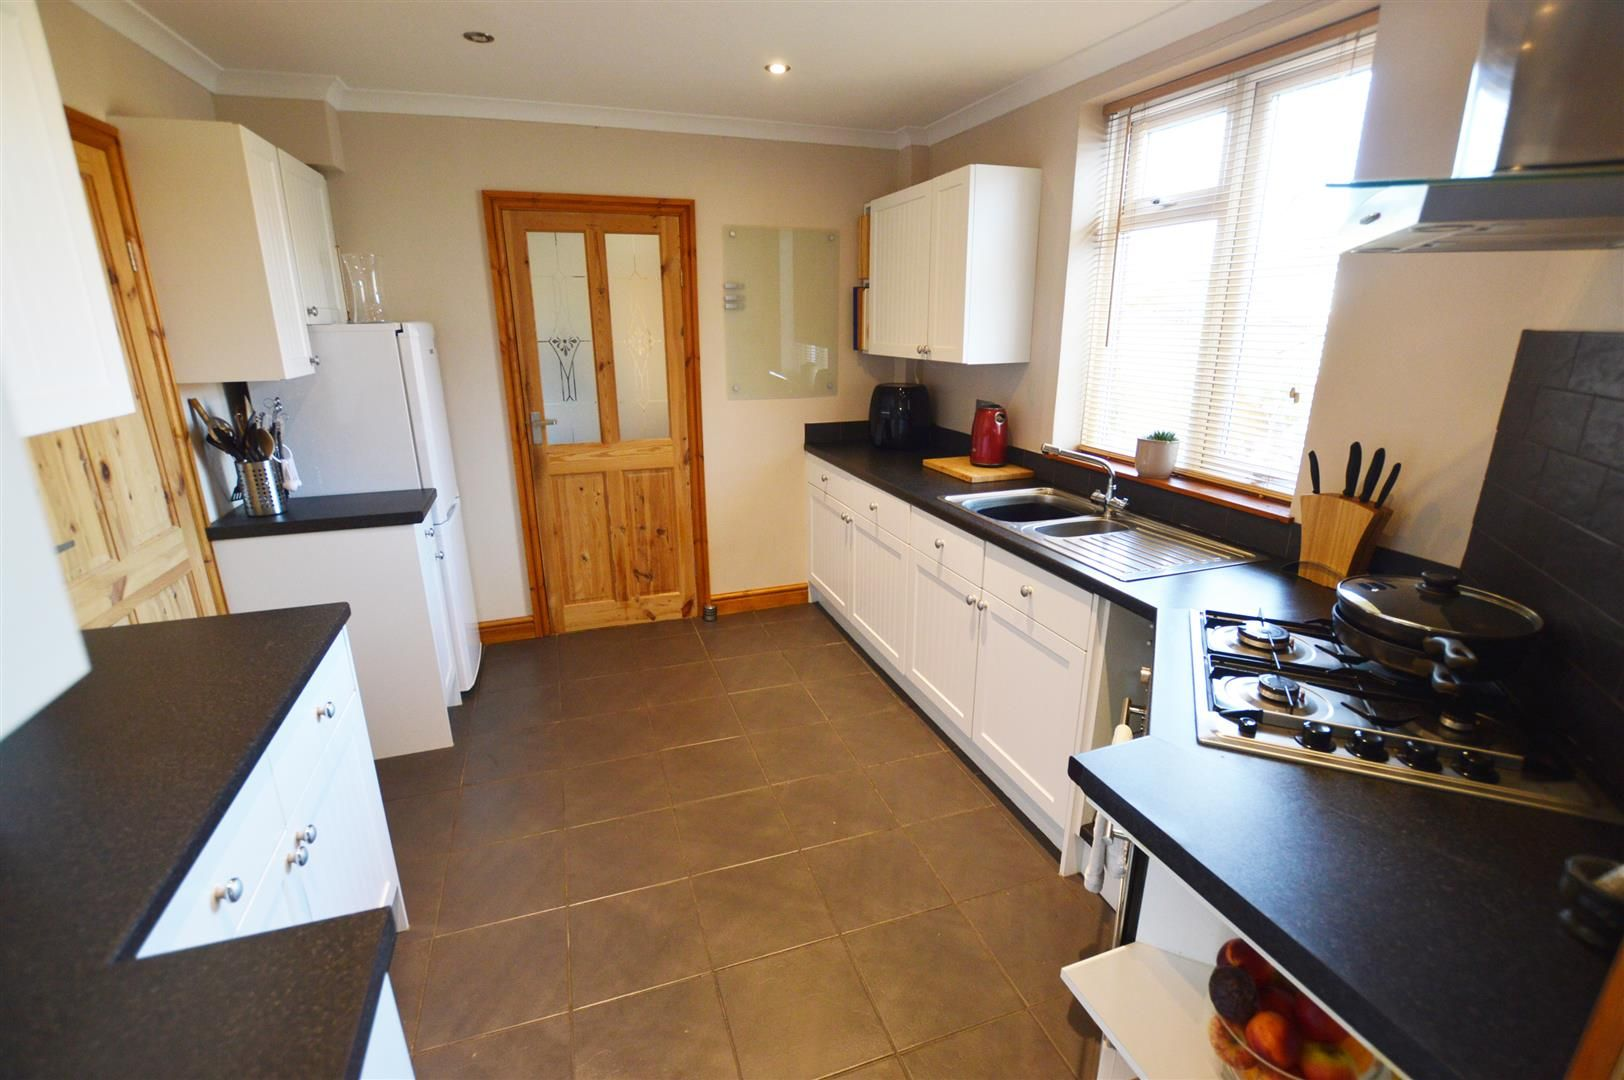 4 bed semi-detached for sale in Hereford 3